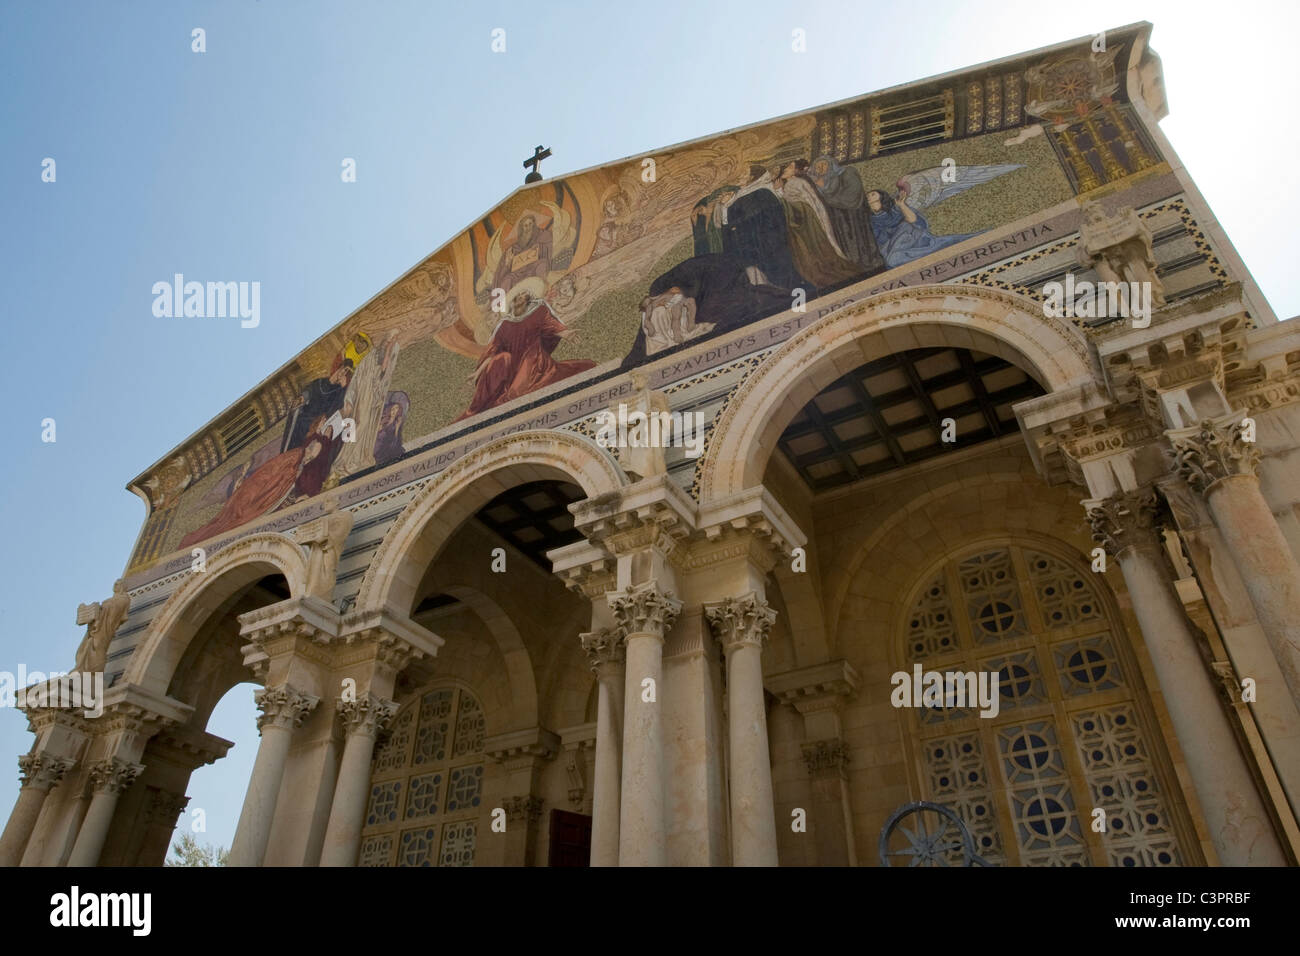 The Church of All Nations is a Roman Catholic church located on the Mount of Olives in Jerusalem. - Stock Image